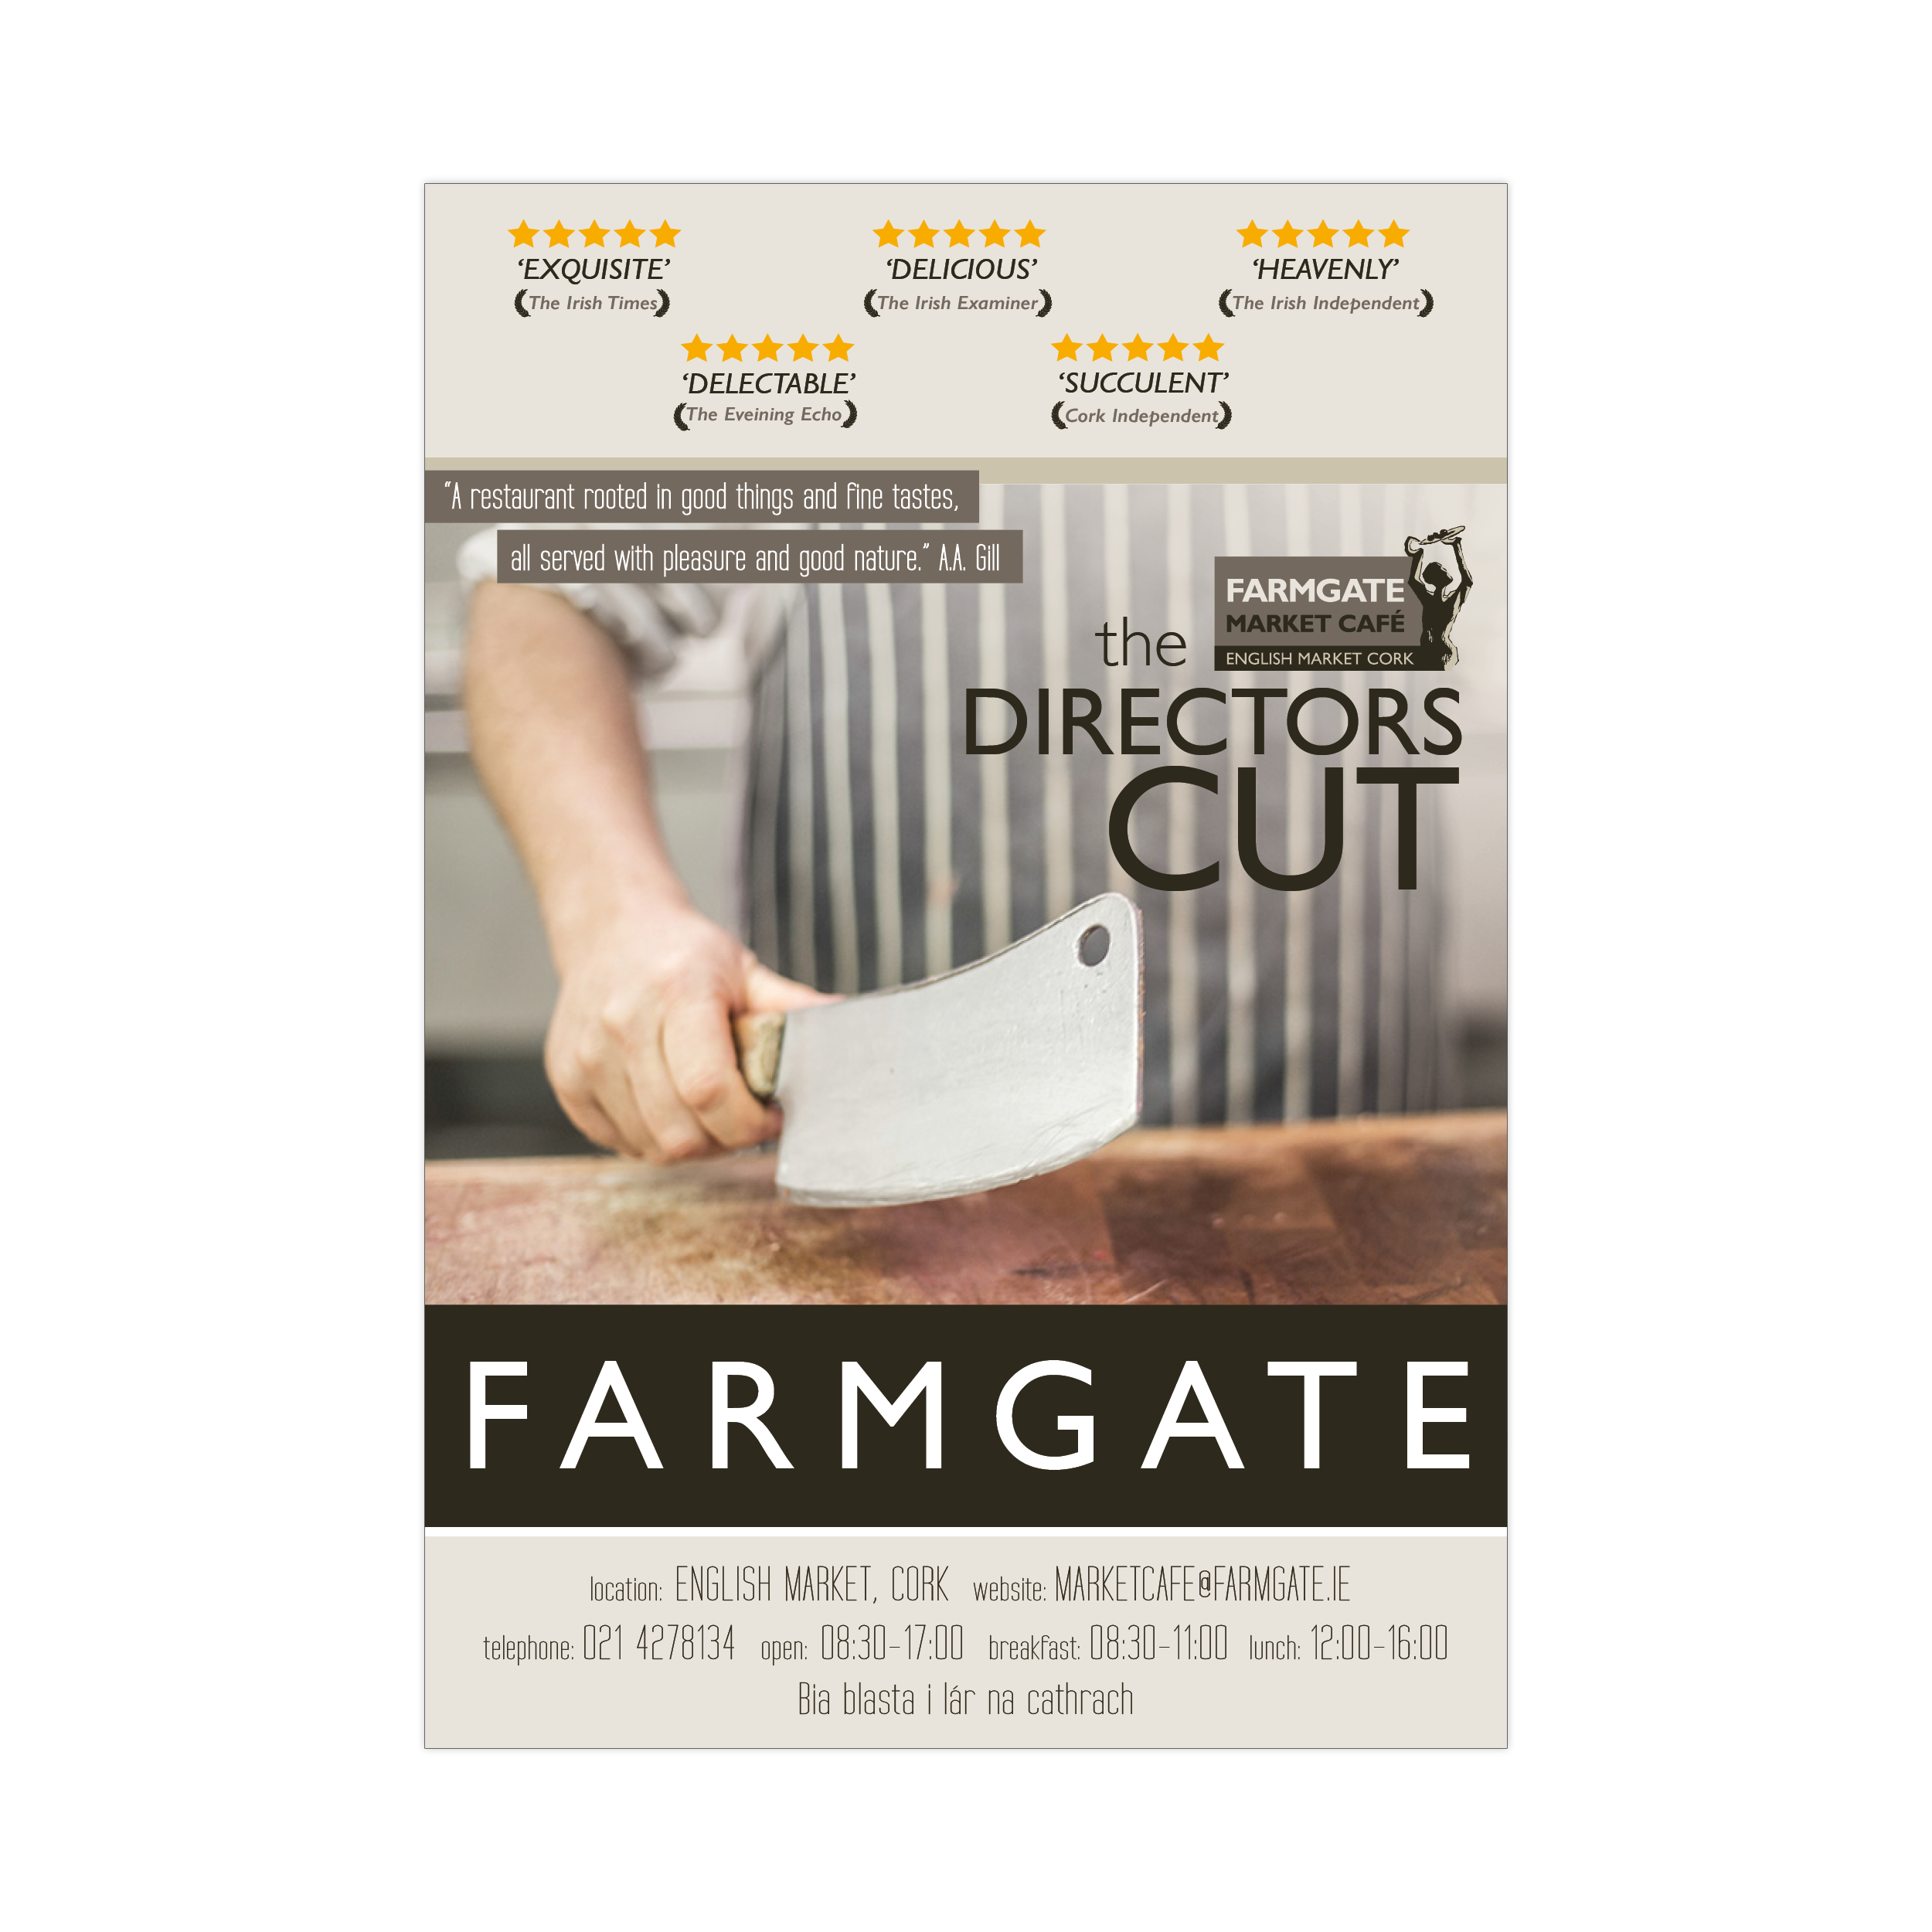 farmgate_3.png